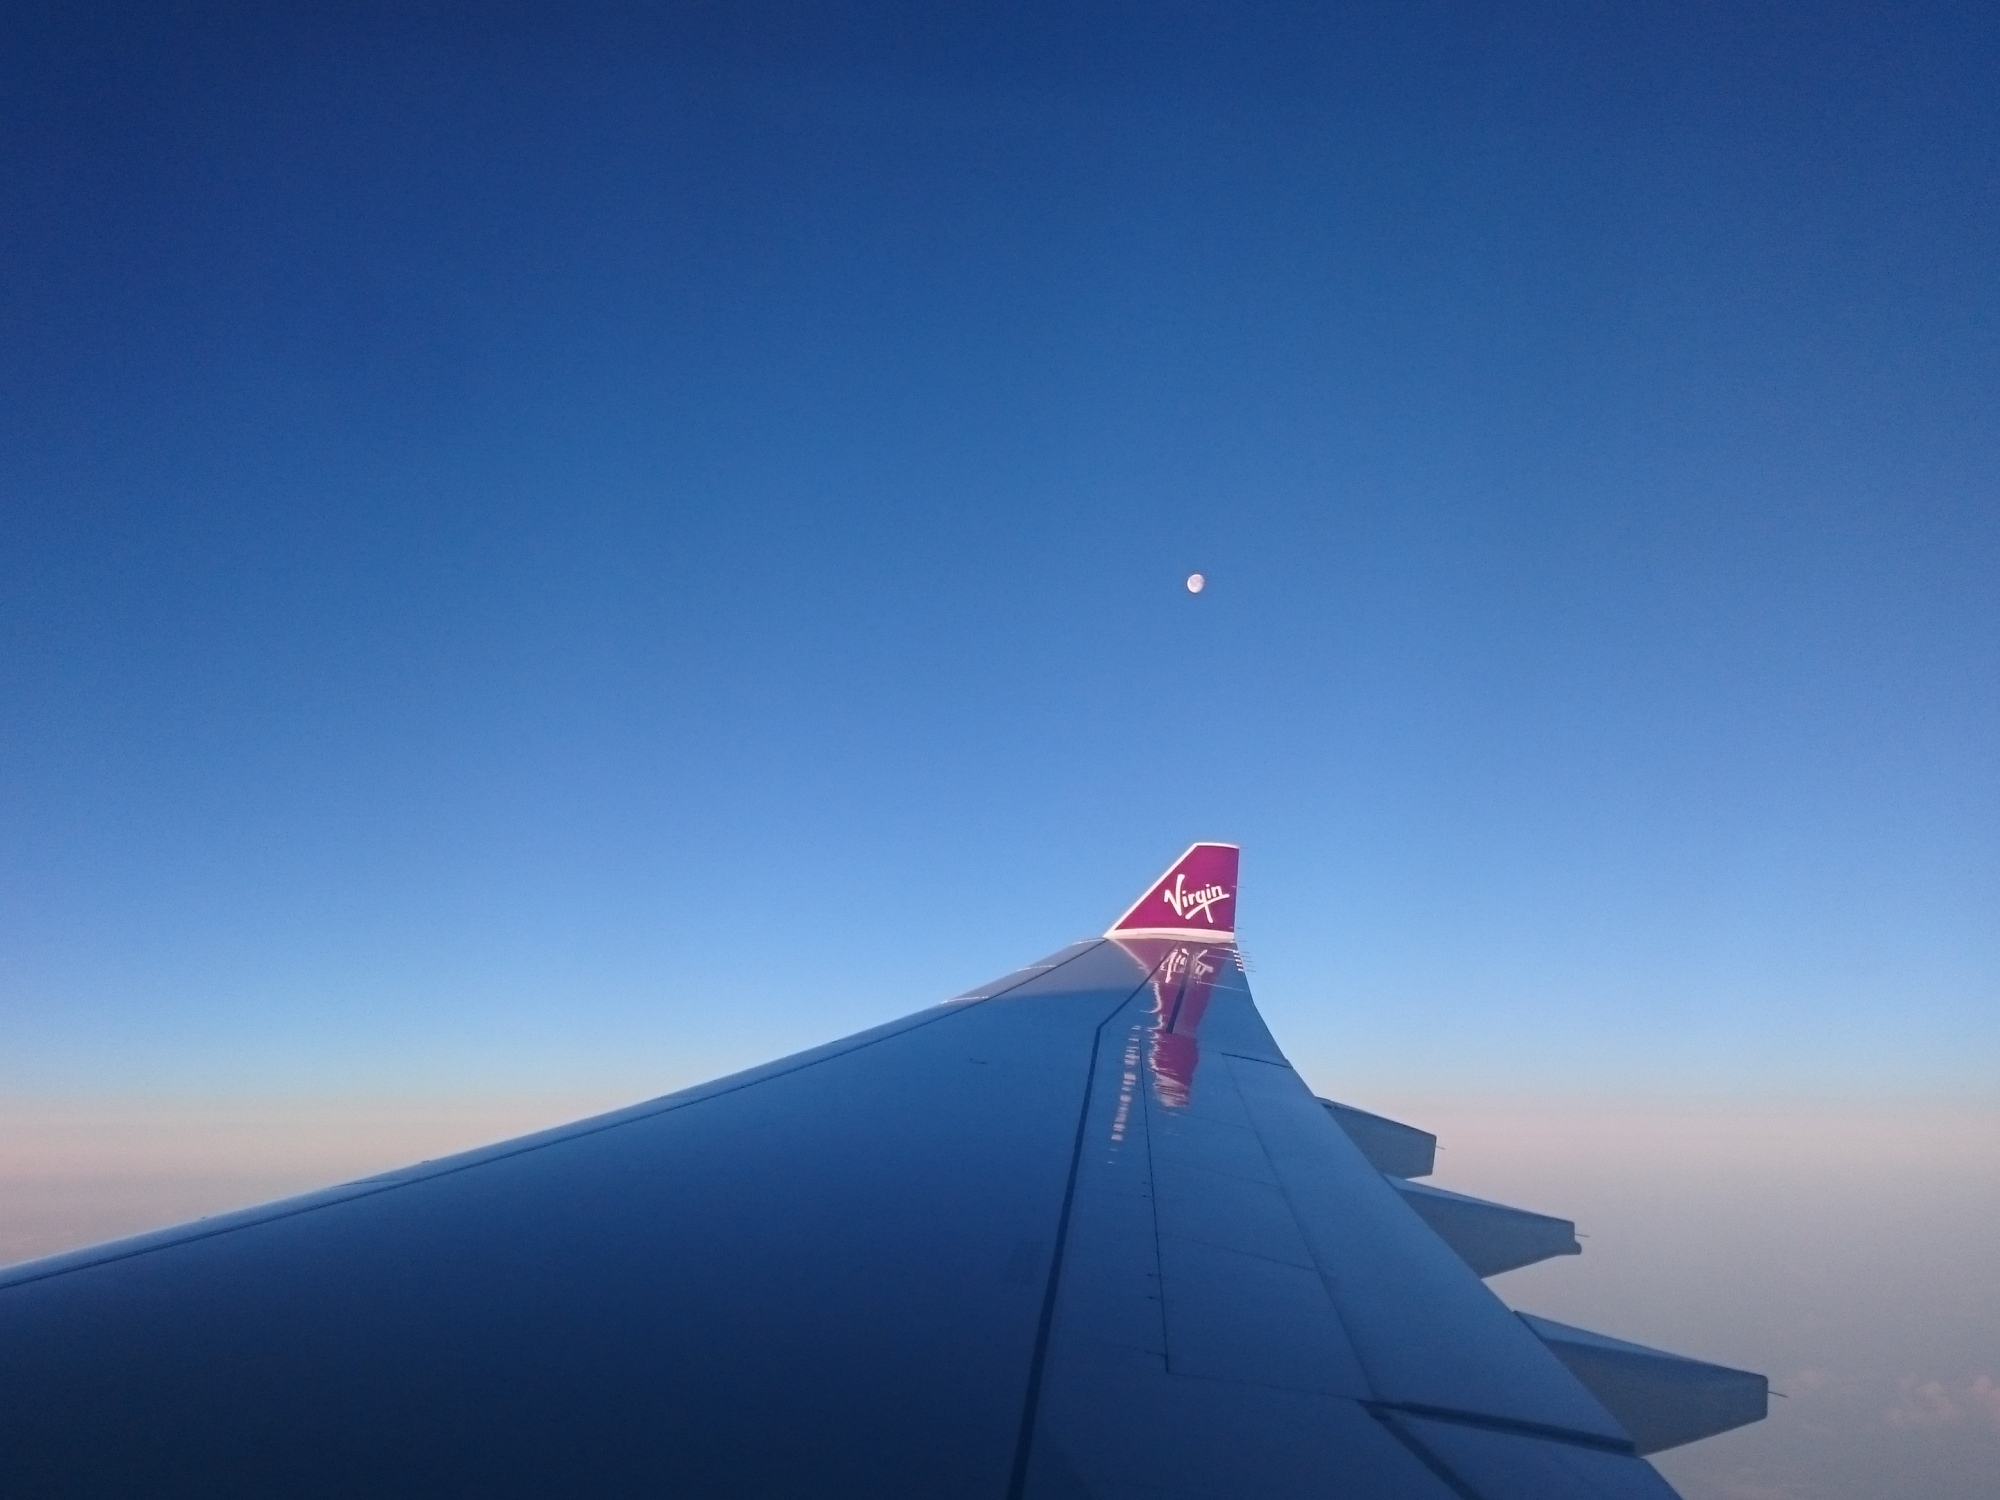 Virgin Atlantic wing